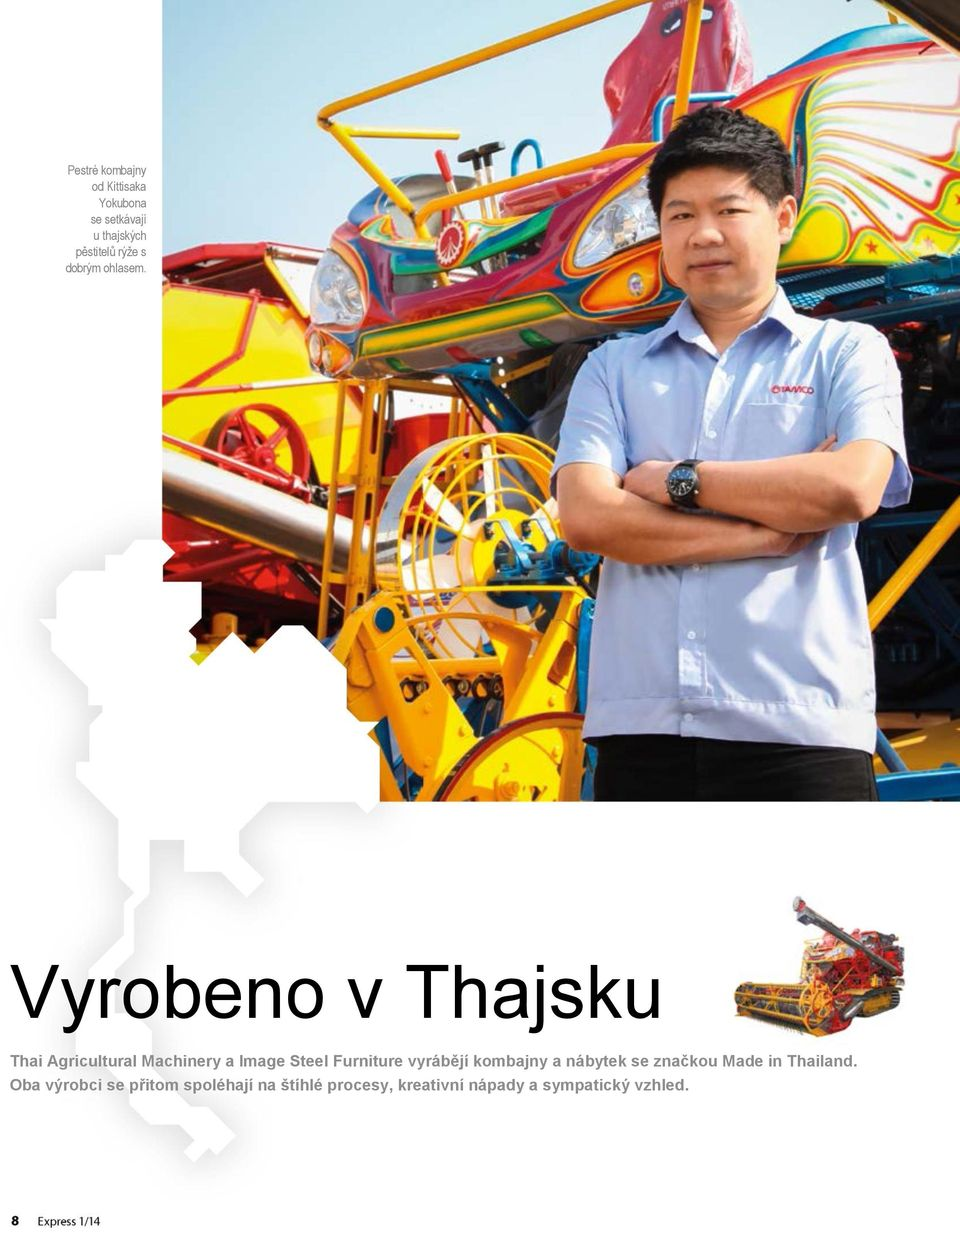 Vyrobeno v Thajsku Thai Agricultural Machinery a Image Steel Furniture